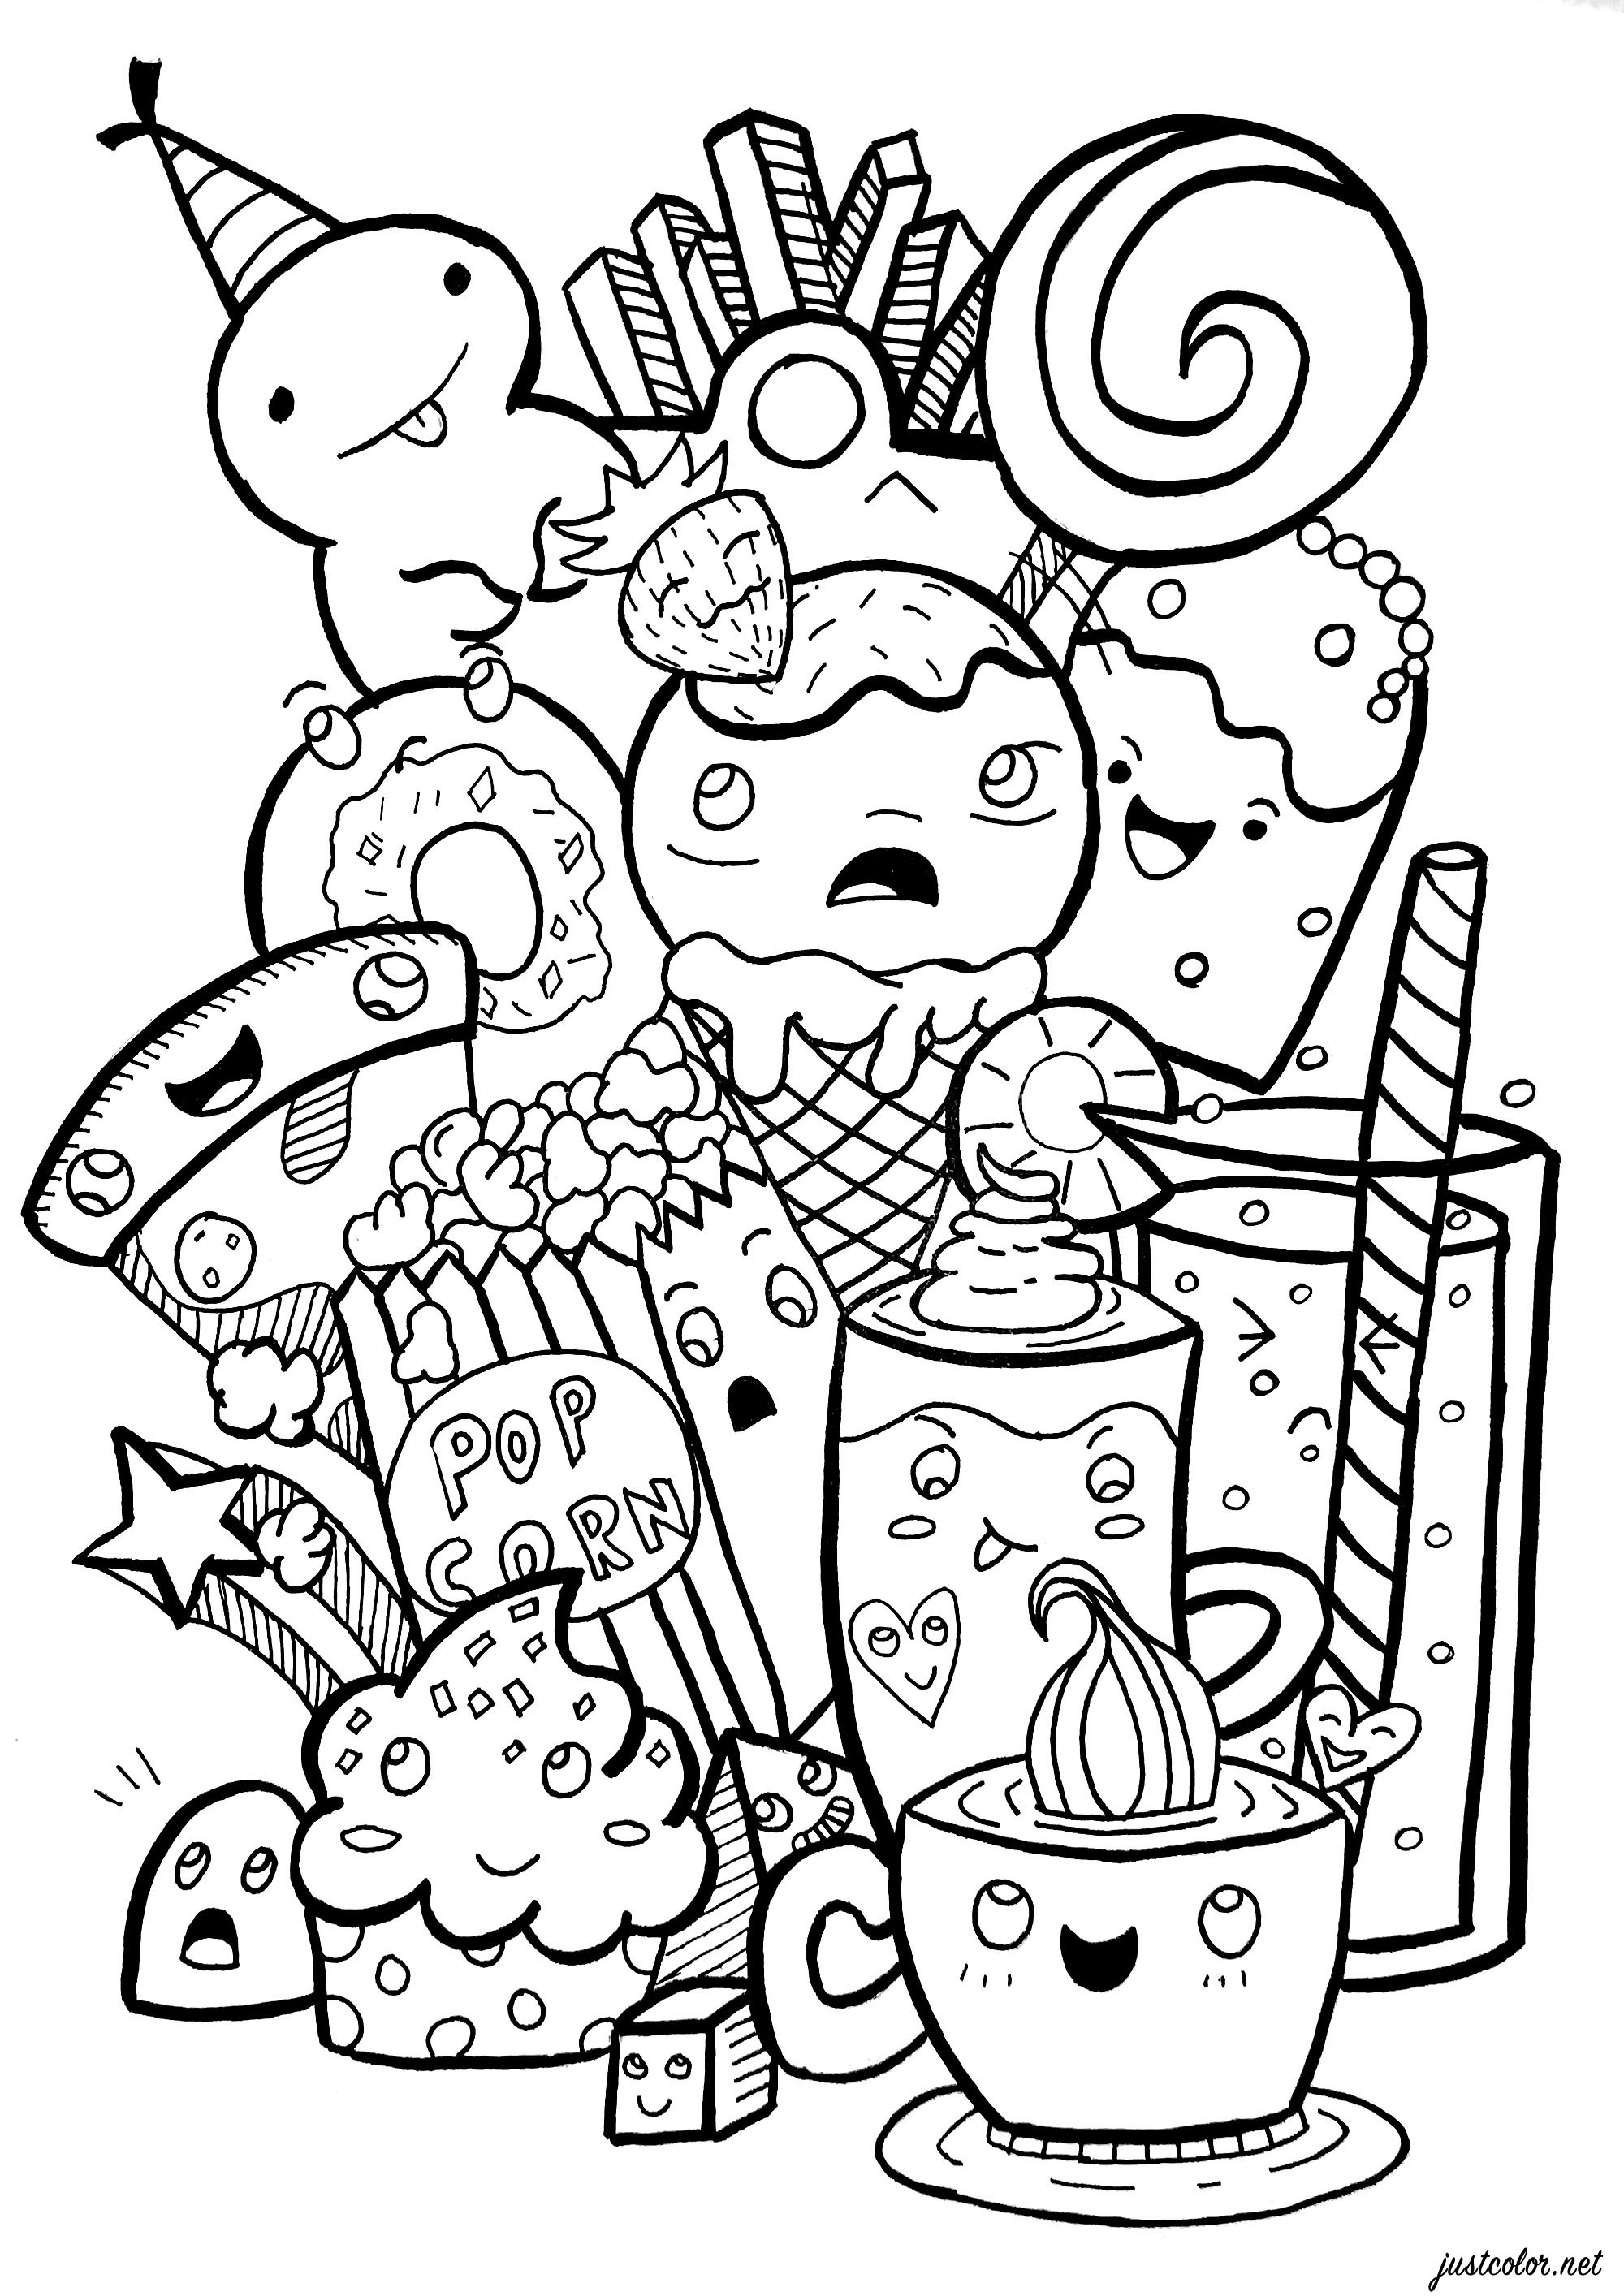 Junk food Doodle - Doodle Art / Doodling Adult Coloring Pages